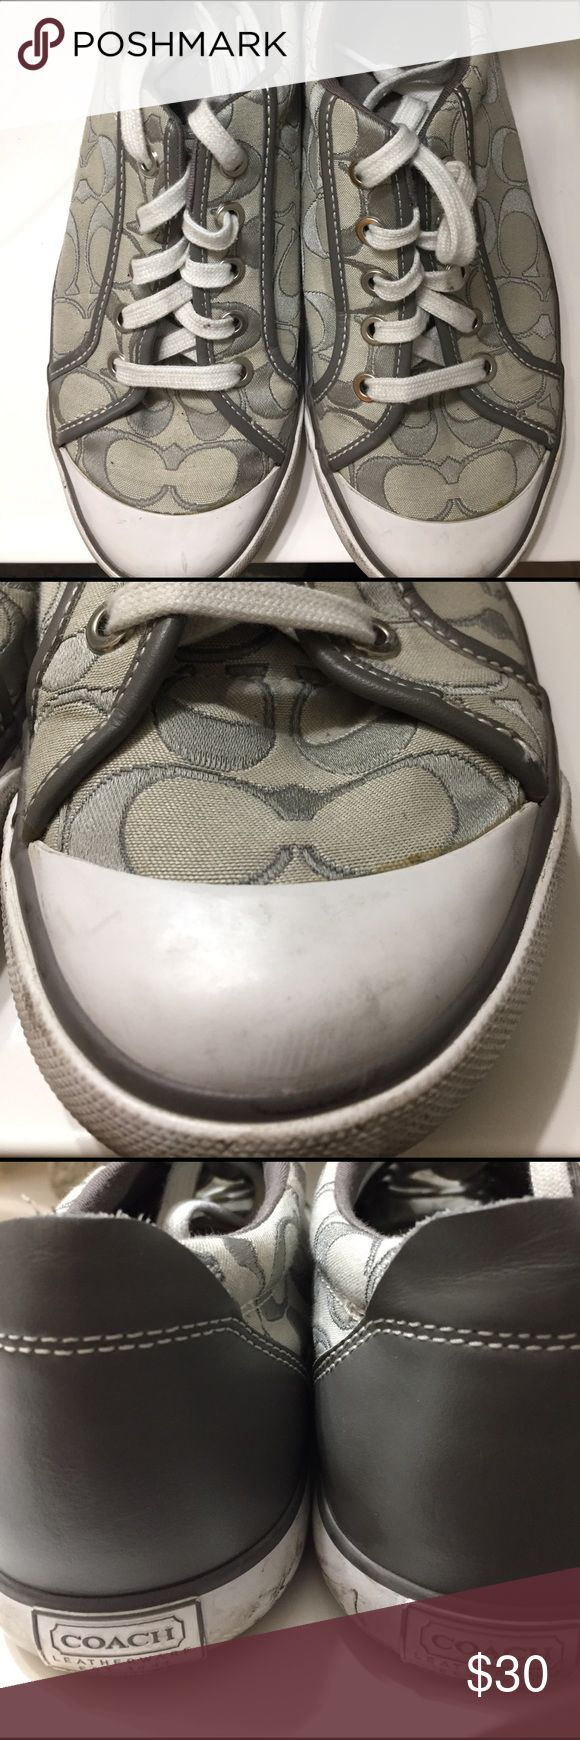 Coach tennis shoes size 9 These Coach tennies are so comfortable and cute.  They have been loved but have a lot of life left for sure. They are ladies size 9 and are gray. Coach Shoes Sneakers